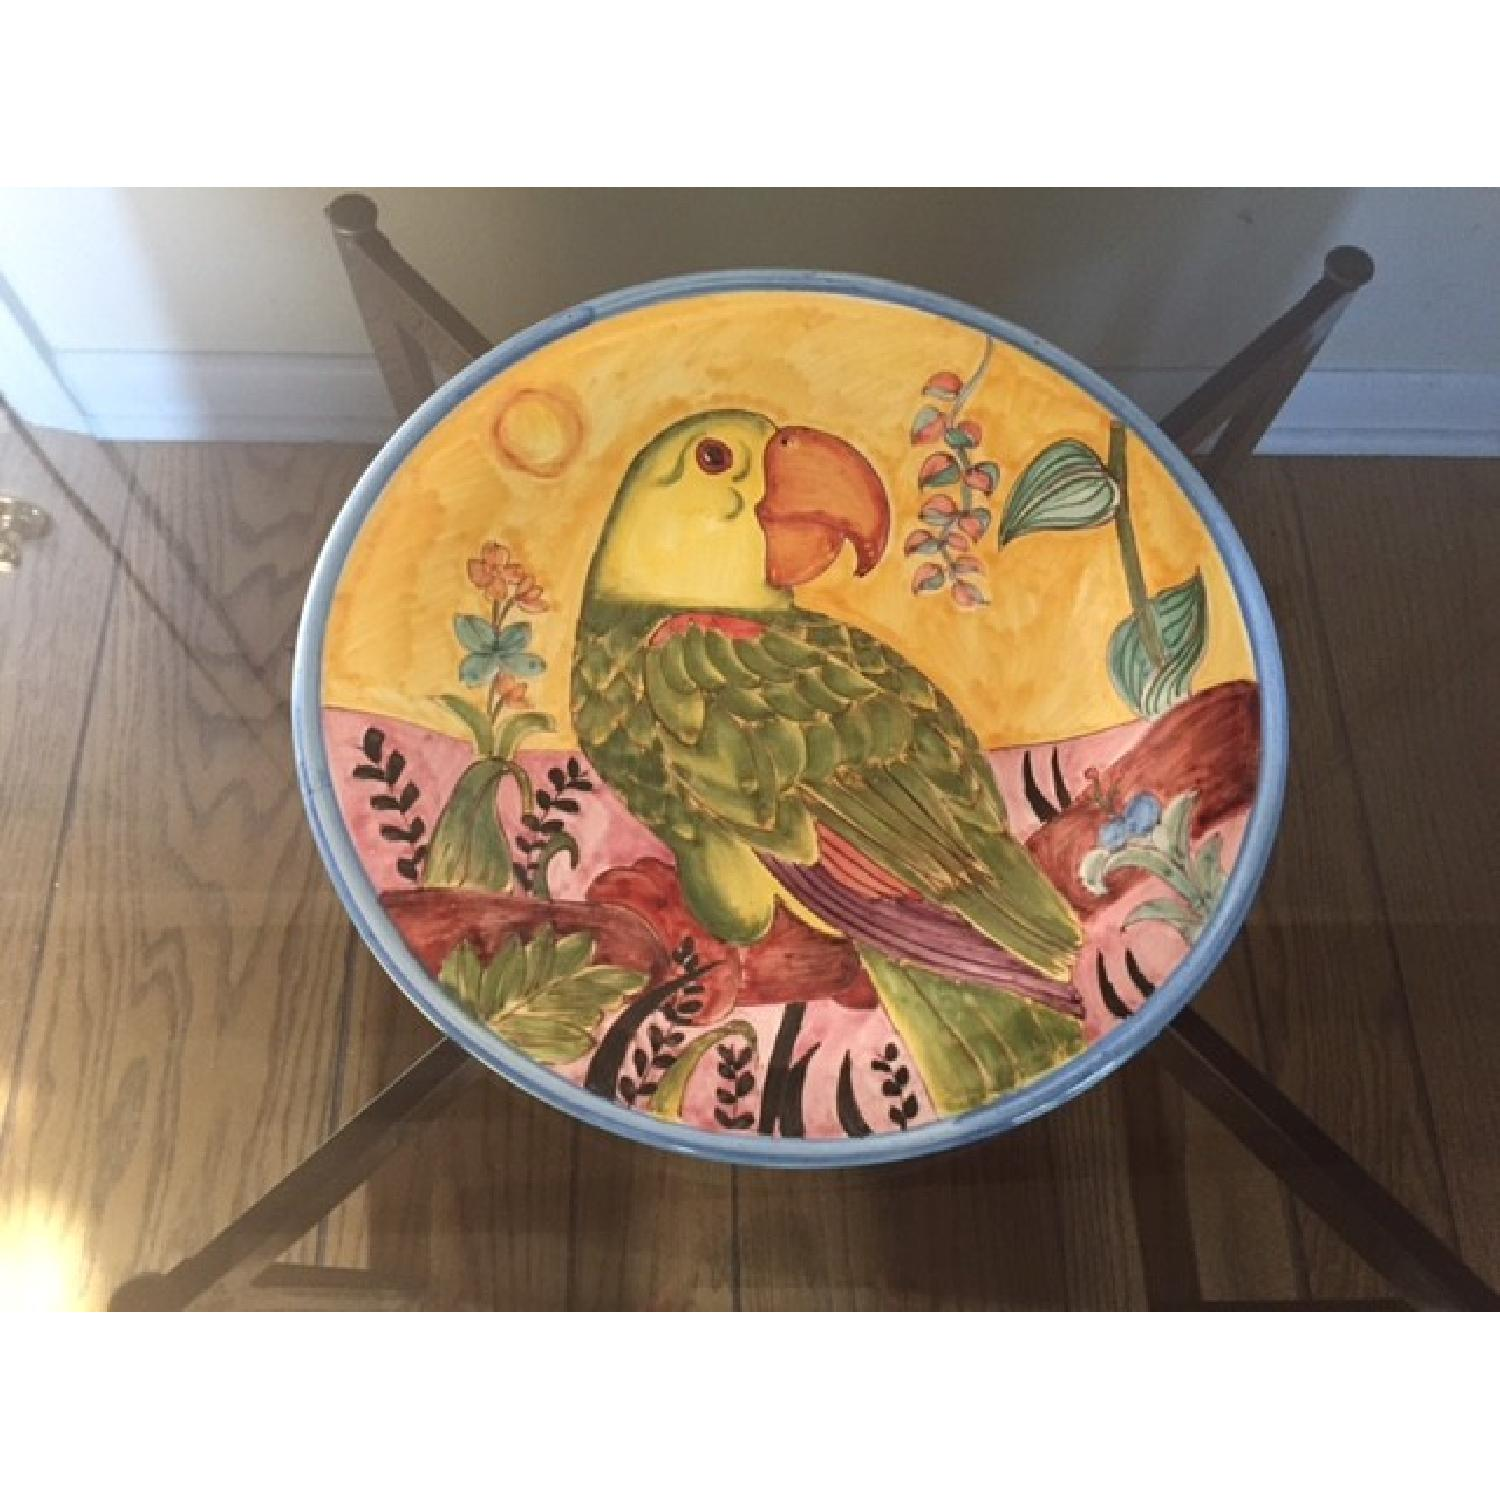 Country Floors Italian Hand Painted Decorative Platter w/ Parrot Print - image-1